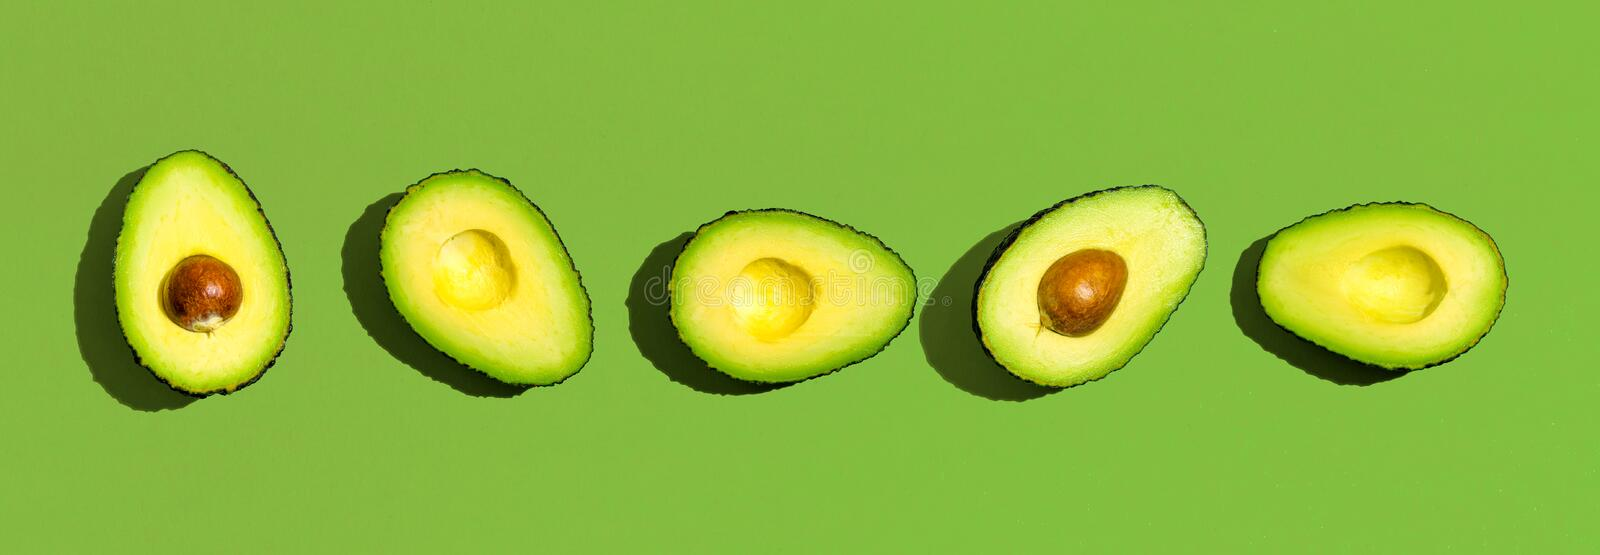 Fresh avocado pattern. On a green background flat lay royalty free stock photography